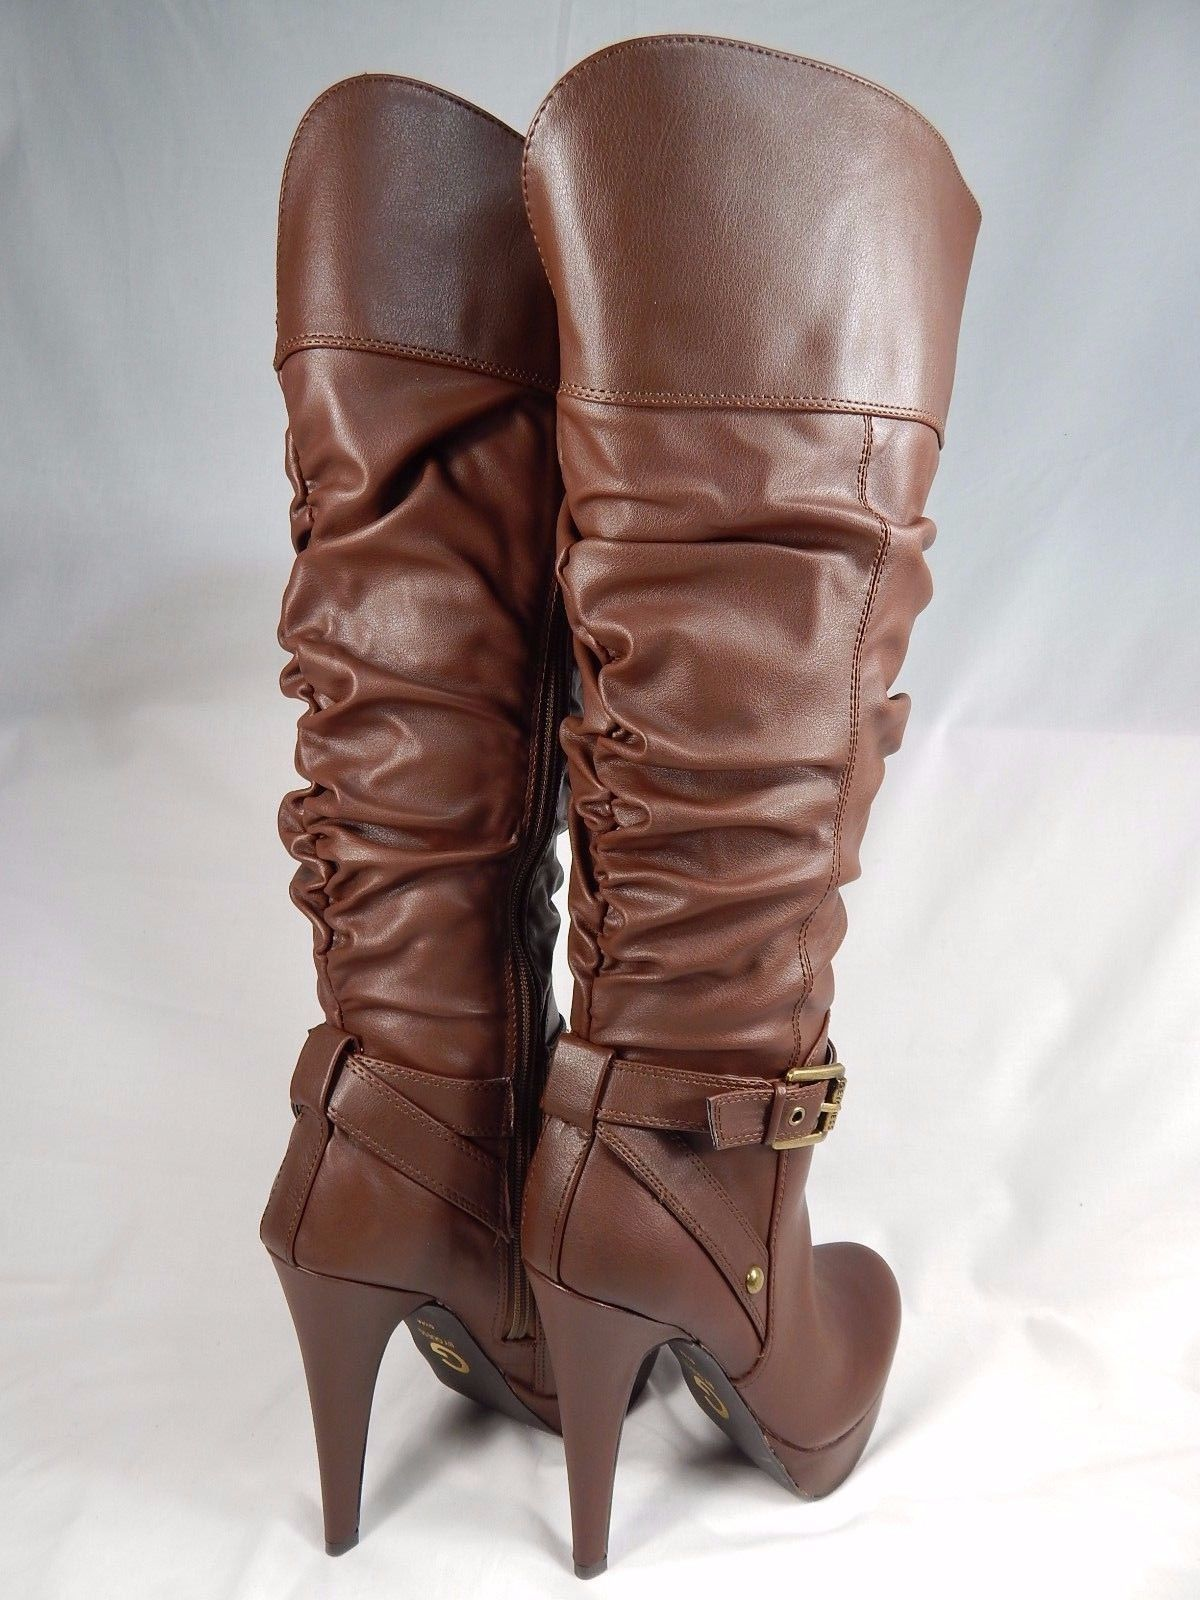 G by Guess Dorbii Knee High Boots Wide Calf Women's Size US 5.5 M (B) Brown $99